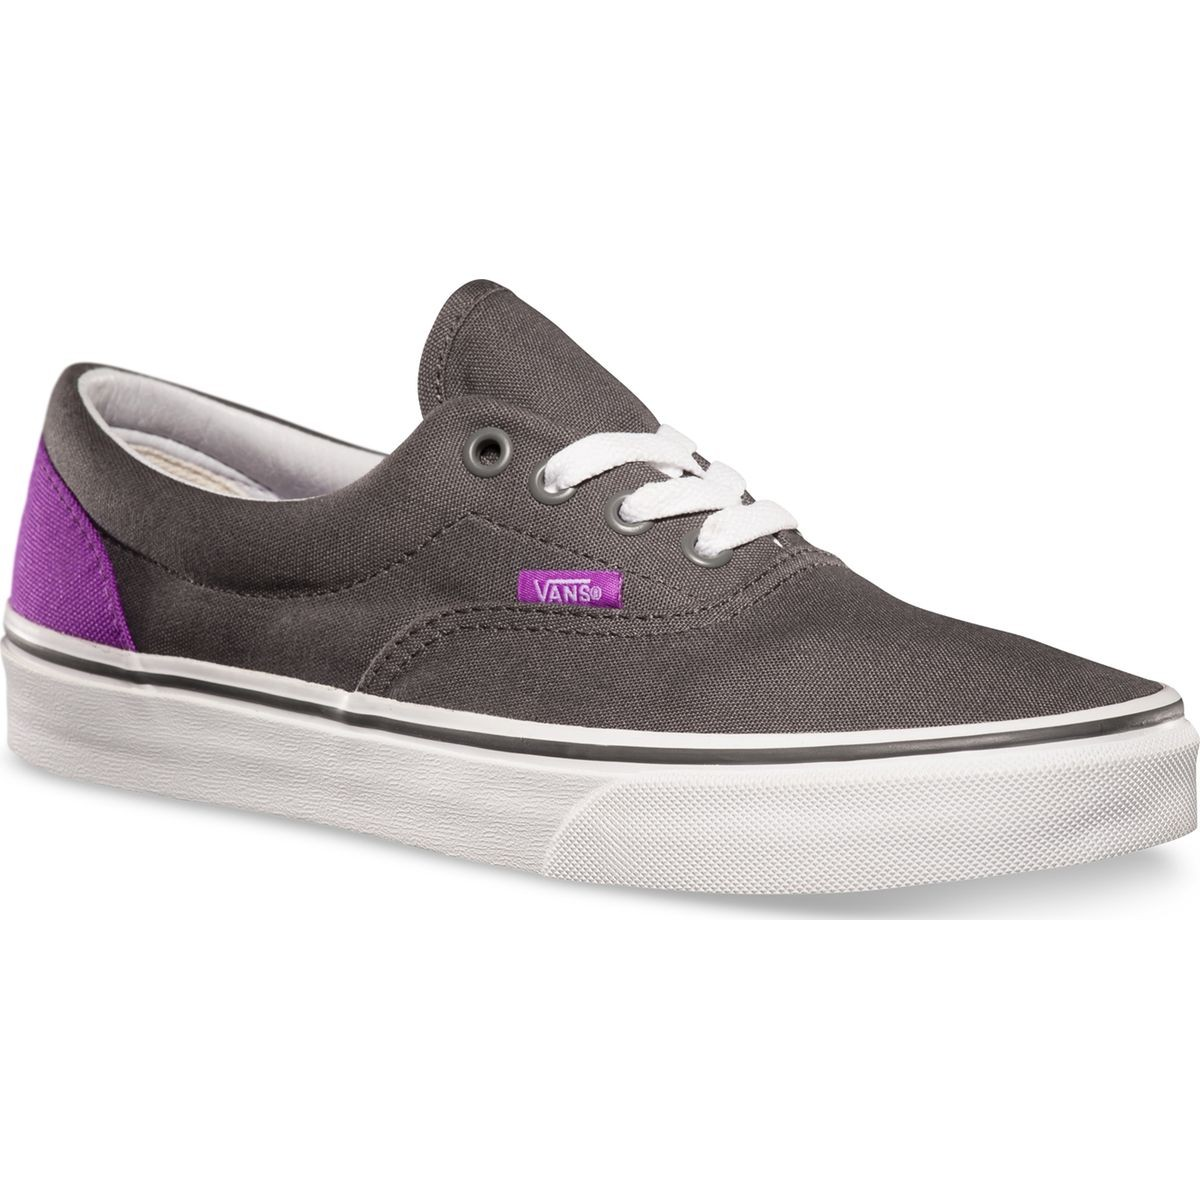 c2ca927815f4 Vans ERA Heel Pop Shoes - Pewter Neon Purple - 4.5